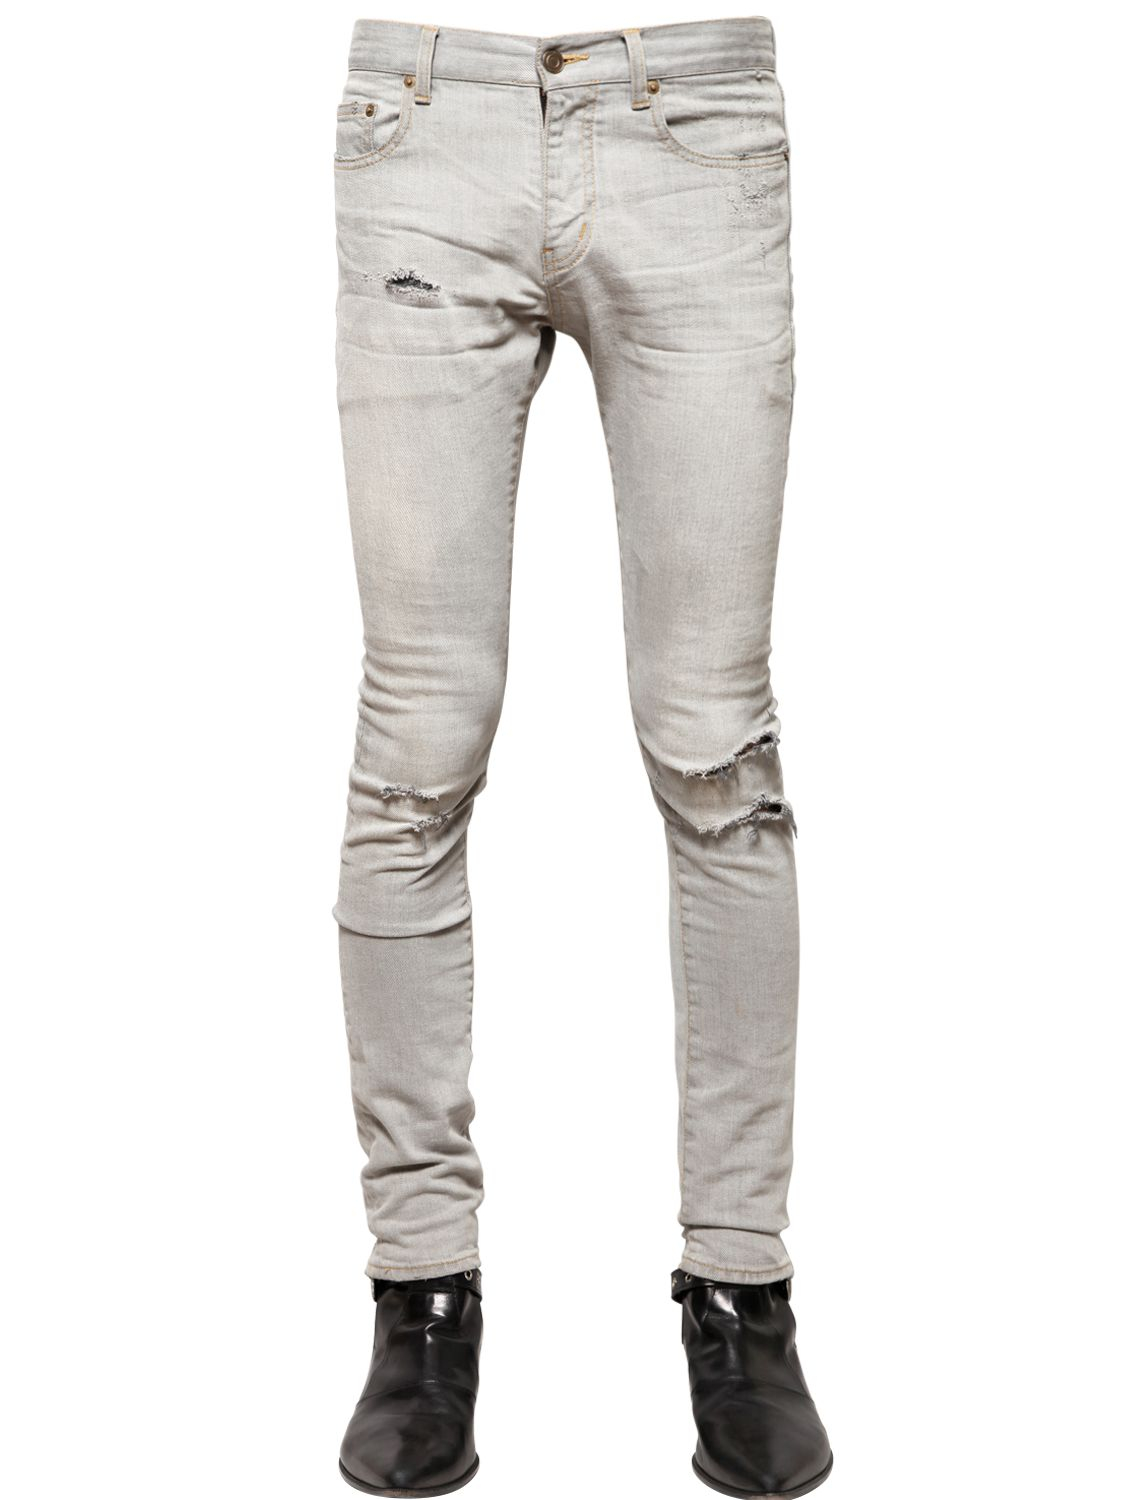 Mens Ripped Skinny Jeans